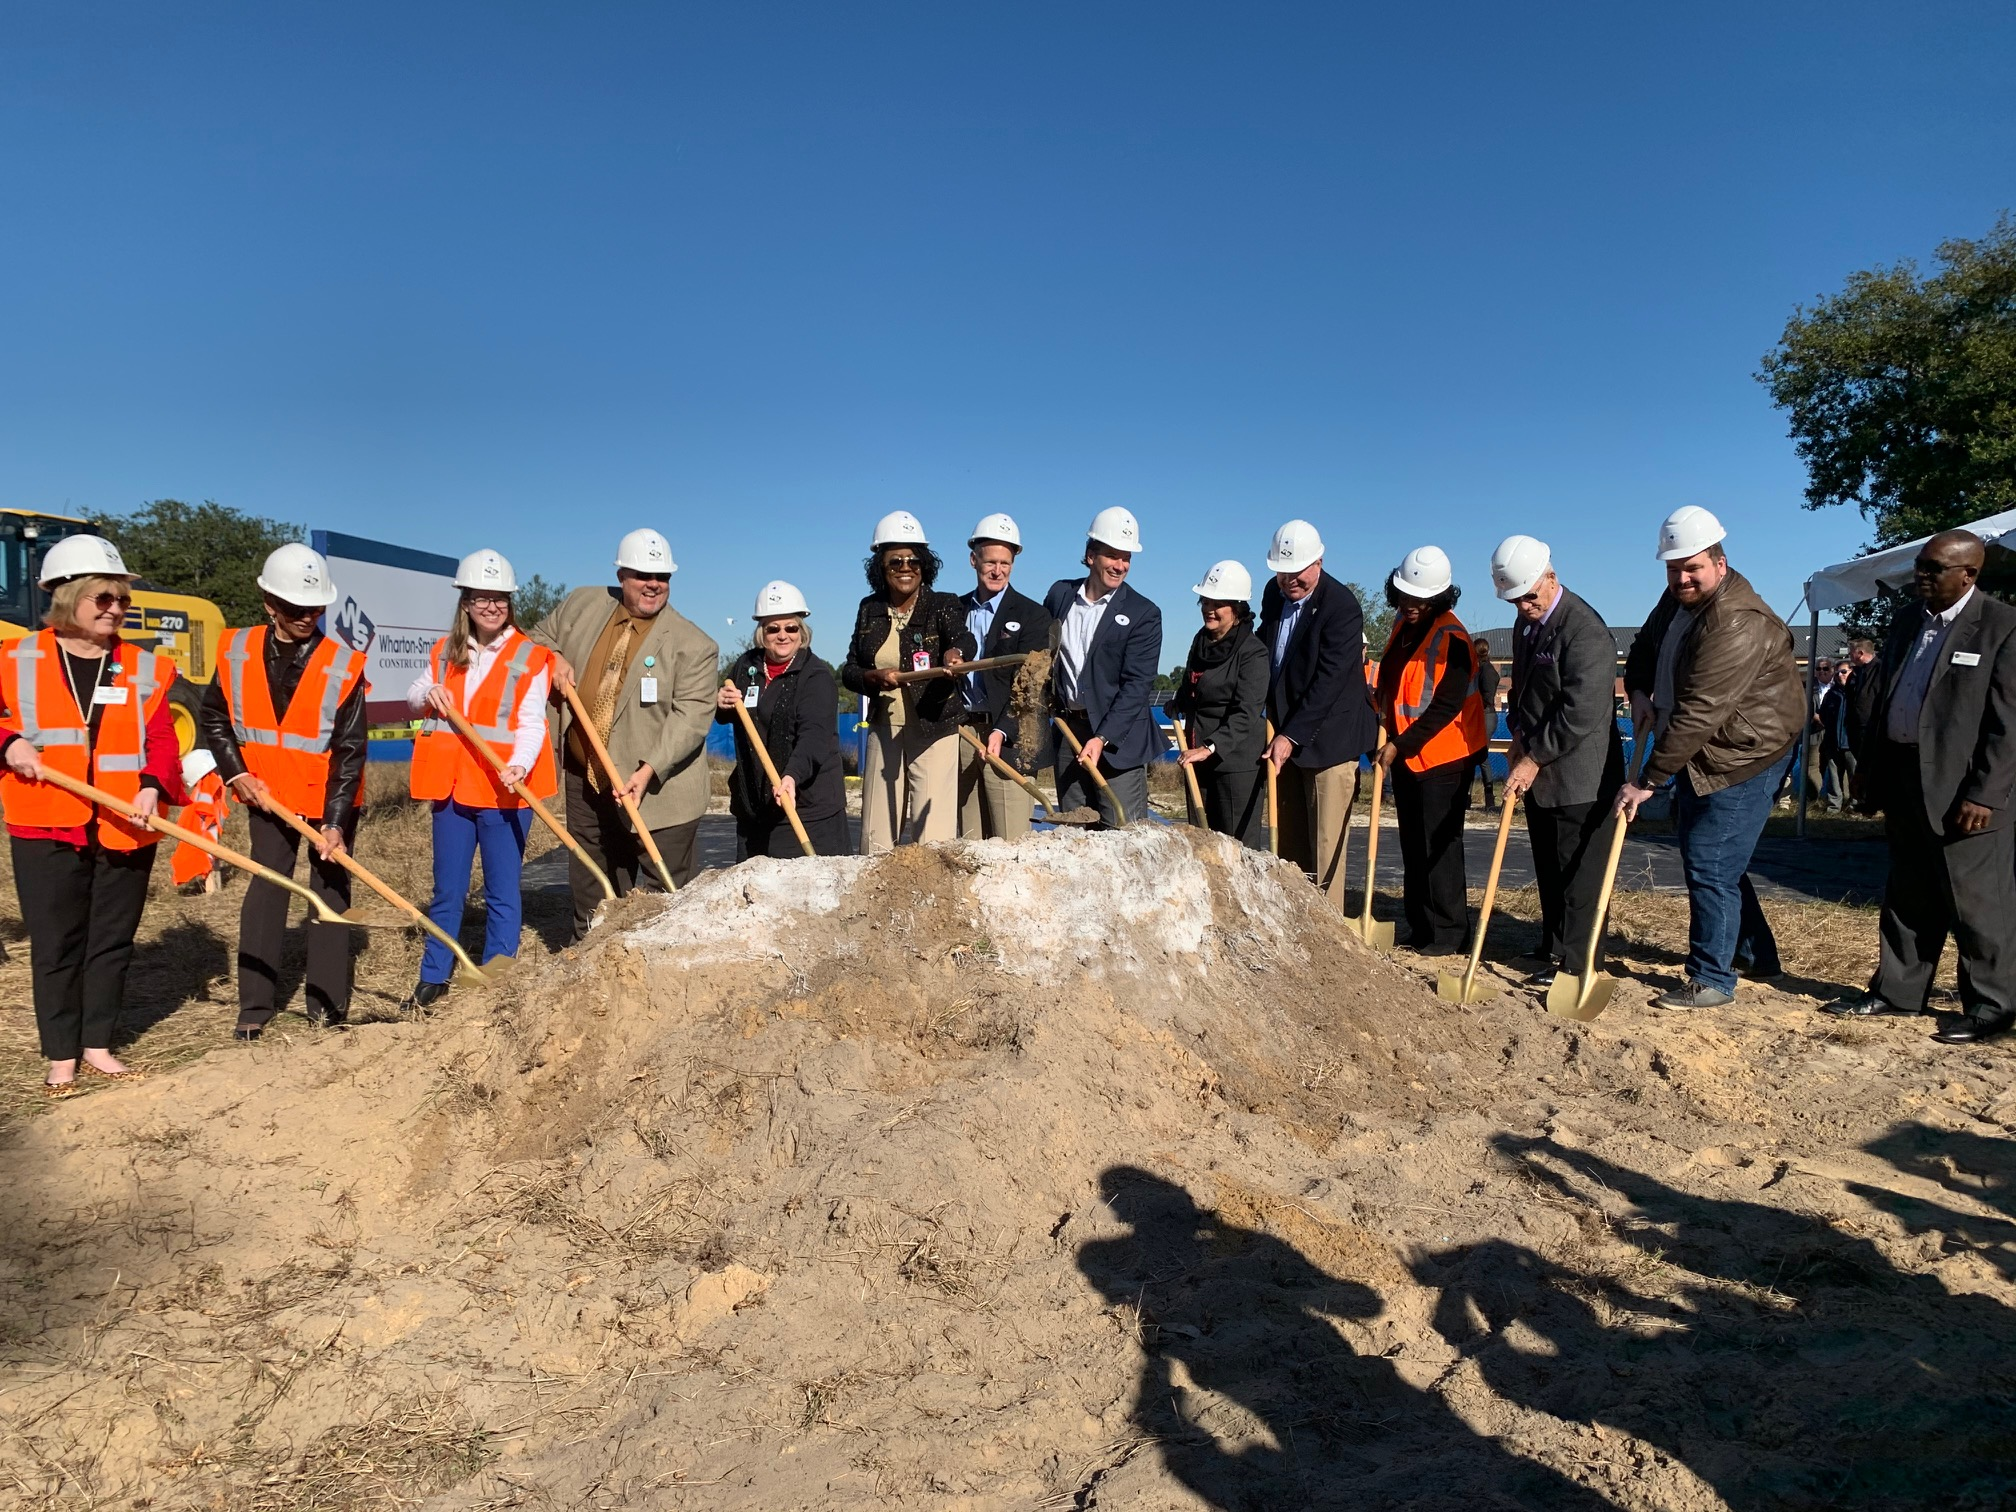 PCPS officials breaking ground on a new high school in Davenport